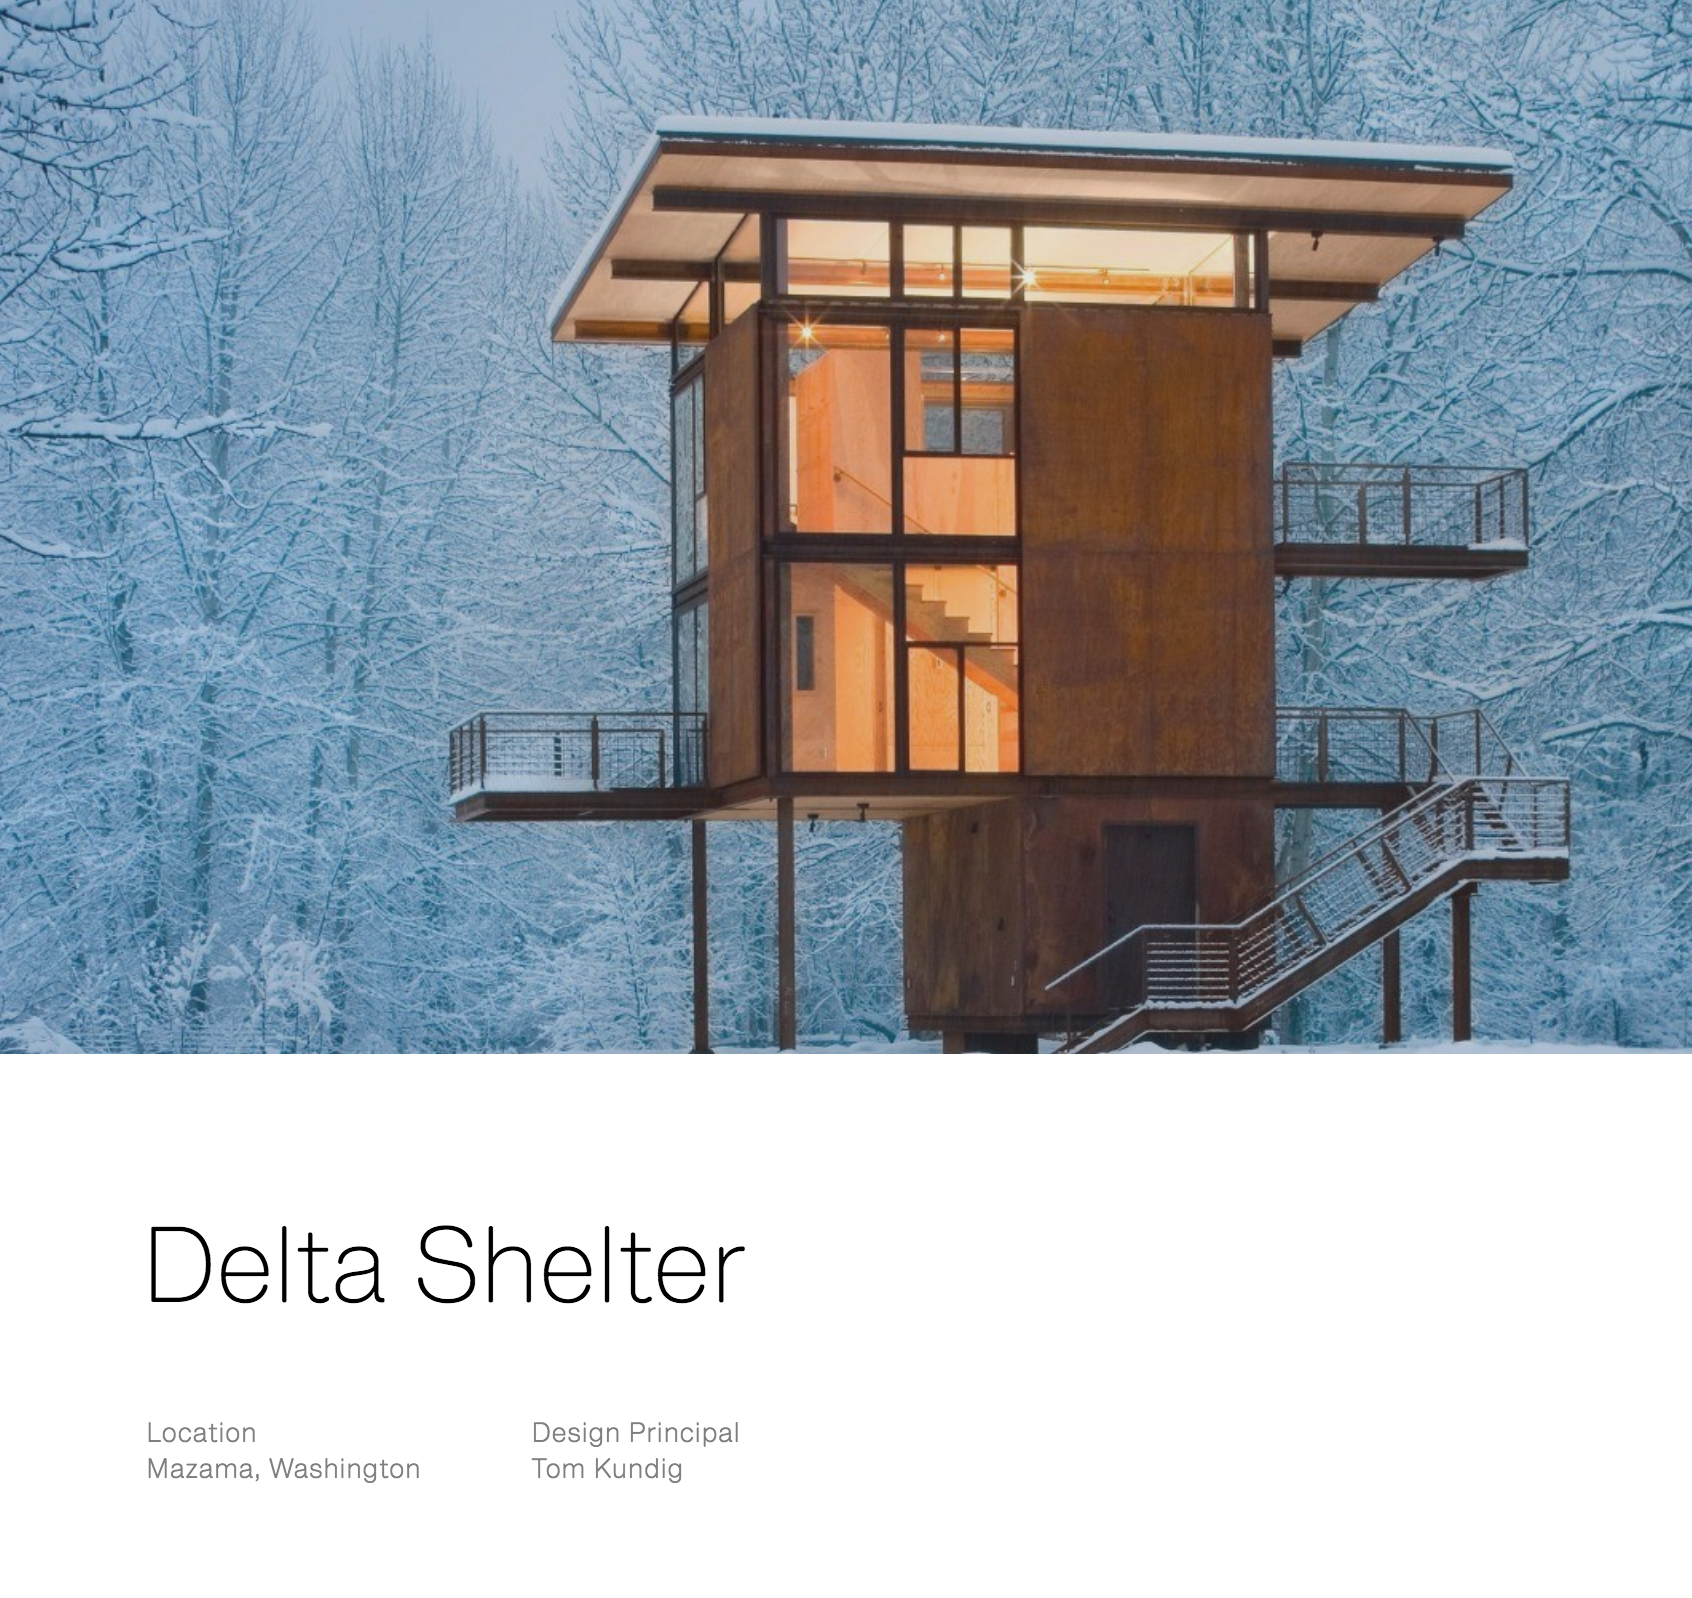 Delta Shelter - Winter View